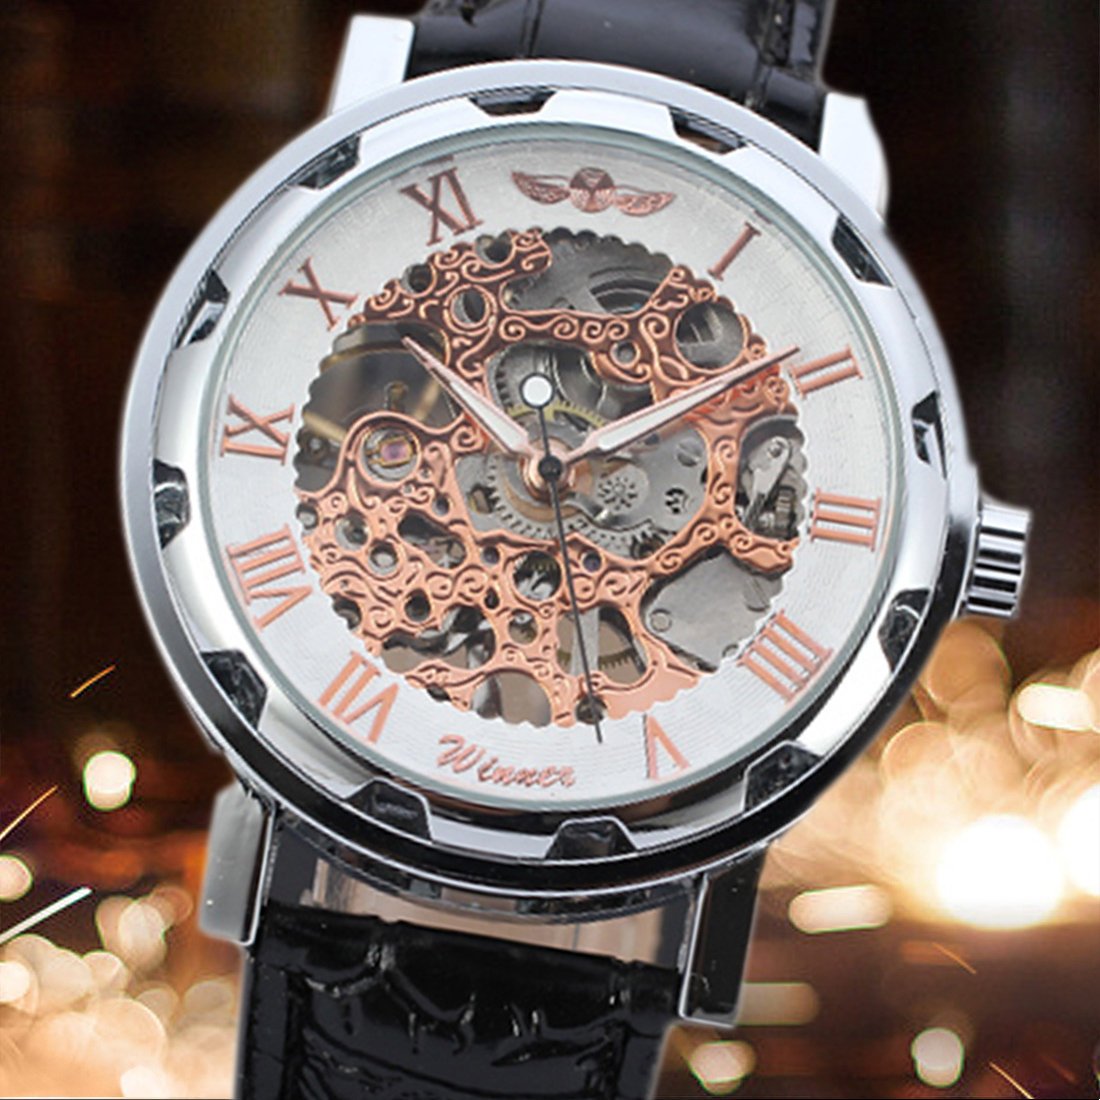 Fashion Mechanical Watch Pu Leather Automatic Mechanical Skeleton Watches Men Fashion Wrist Watch Montre Homme Hombre HorlogeFashion Mechanical Watch Pu Leather Automatic Mechanical Skeleton Watches Men Fashion Wrist Watch Montre Homme Hombre Horloge